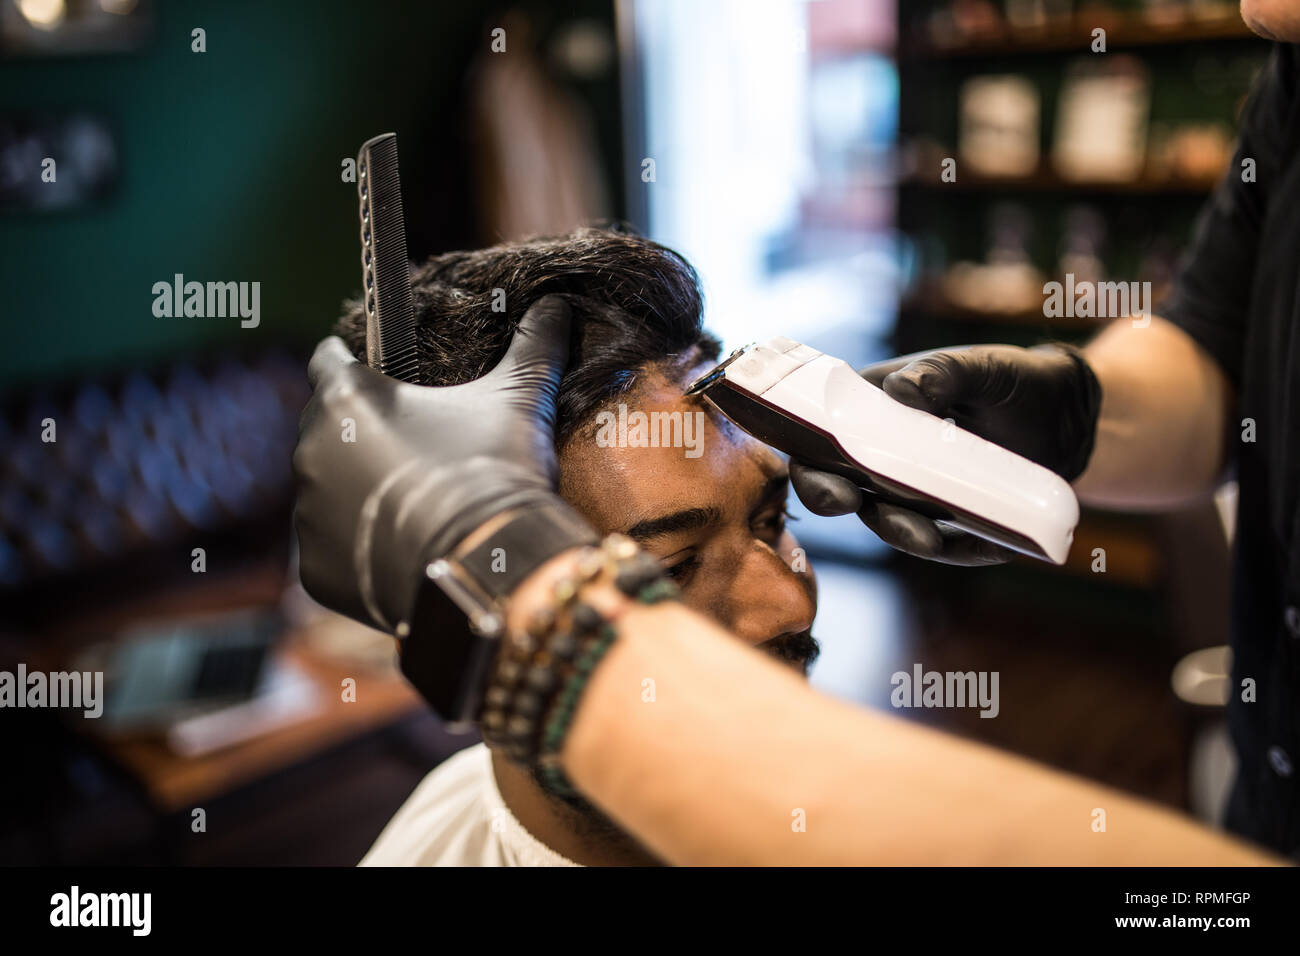 Professional hairdresser doing haircut men's hair. Cutting electric razor. Beauty saloon. Male beauty. The client is a hipster. - Stock Image